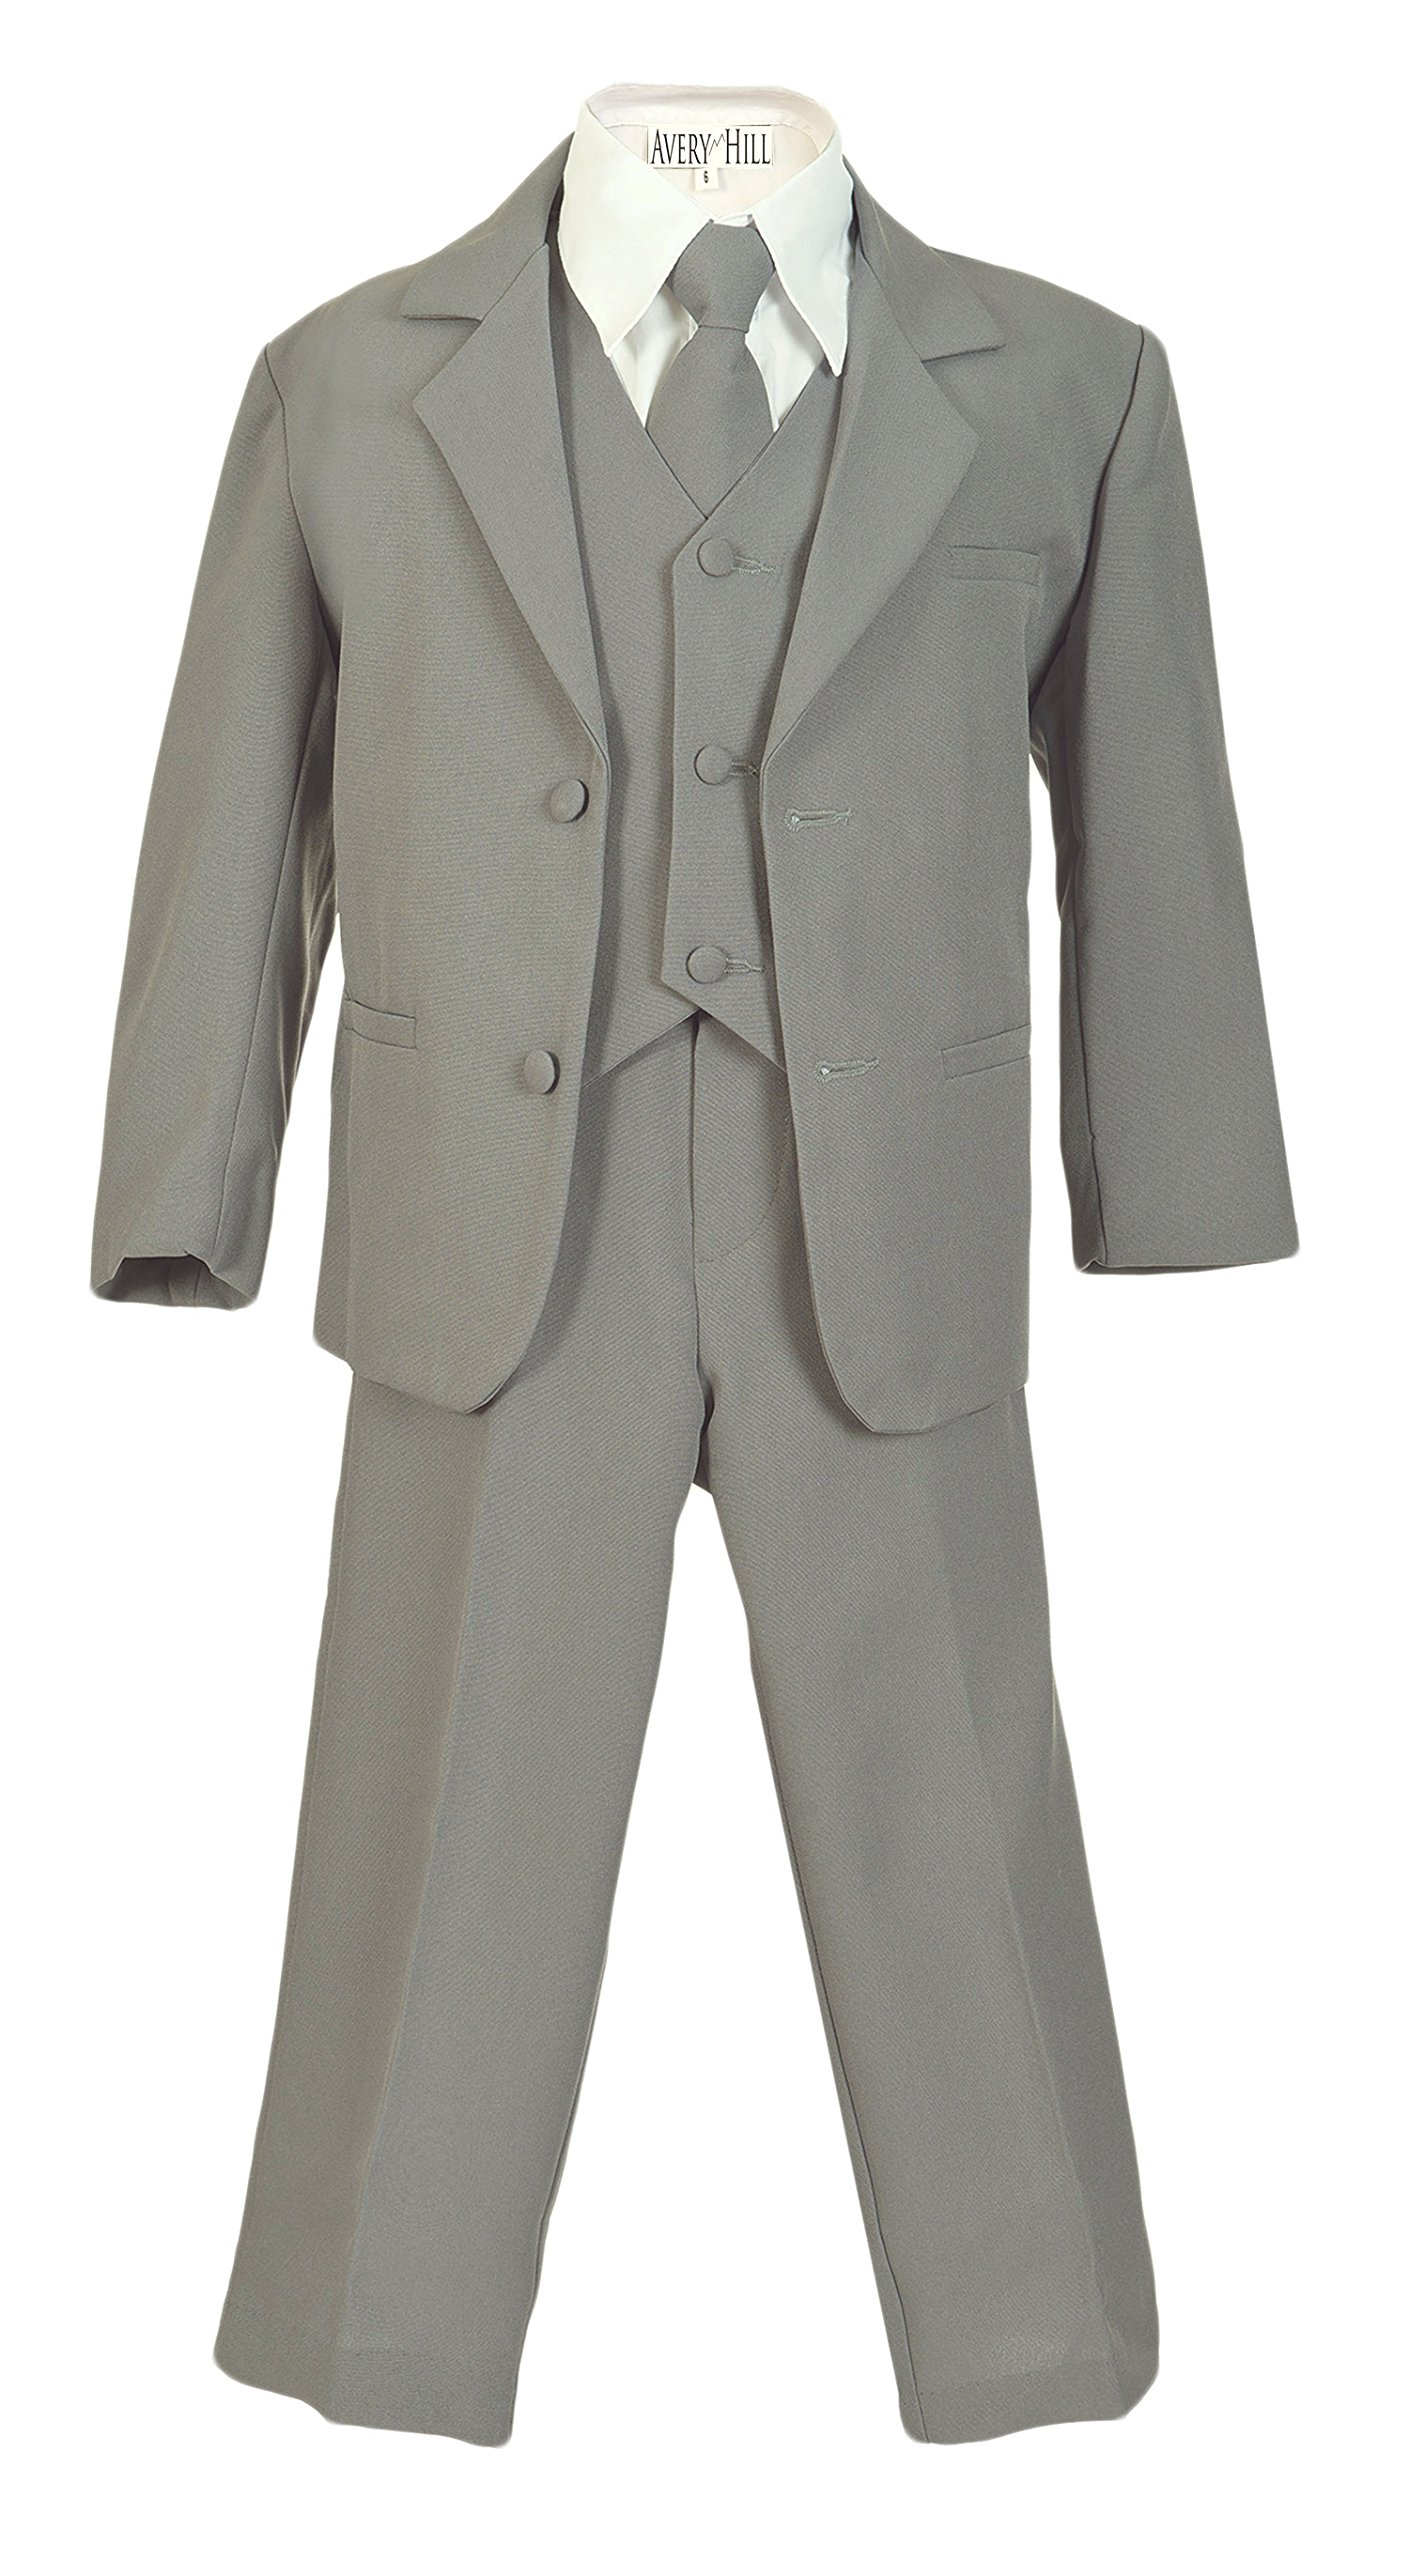 Avery Hill Boys Formal 5 Piece Suit with Shirt and Vest SilverWhite XL by Avery Hill